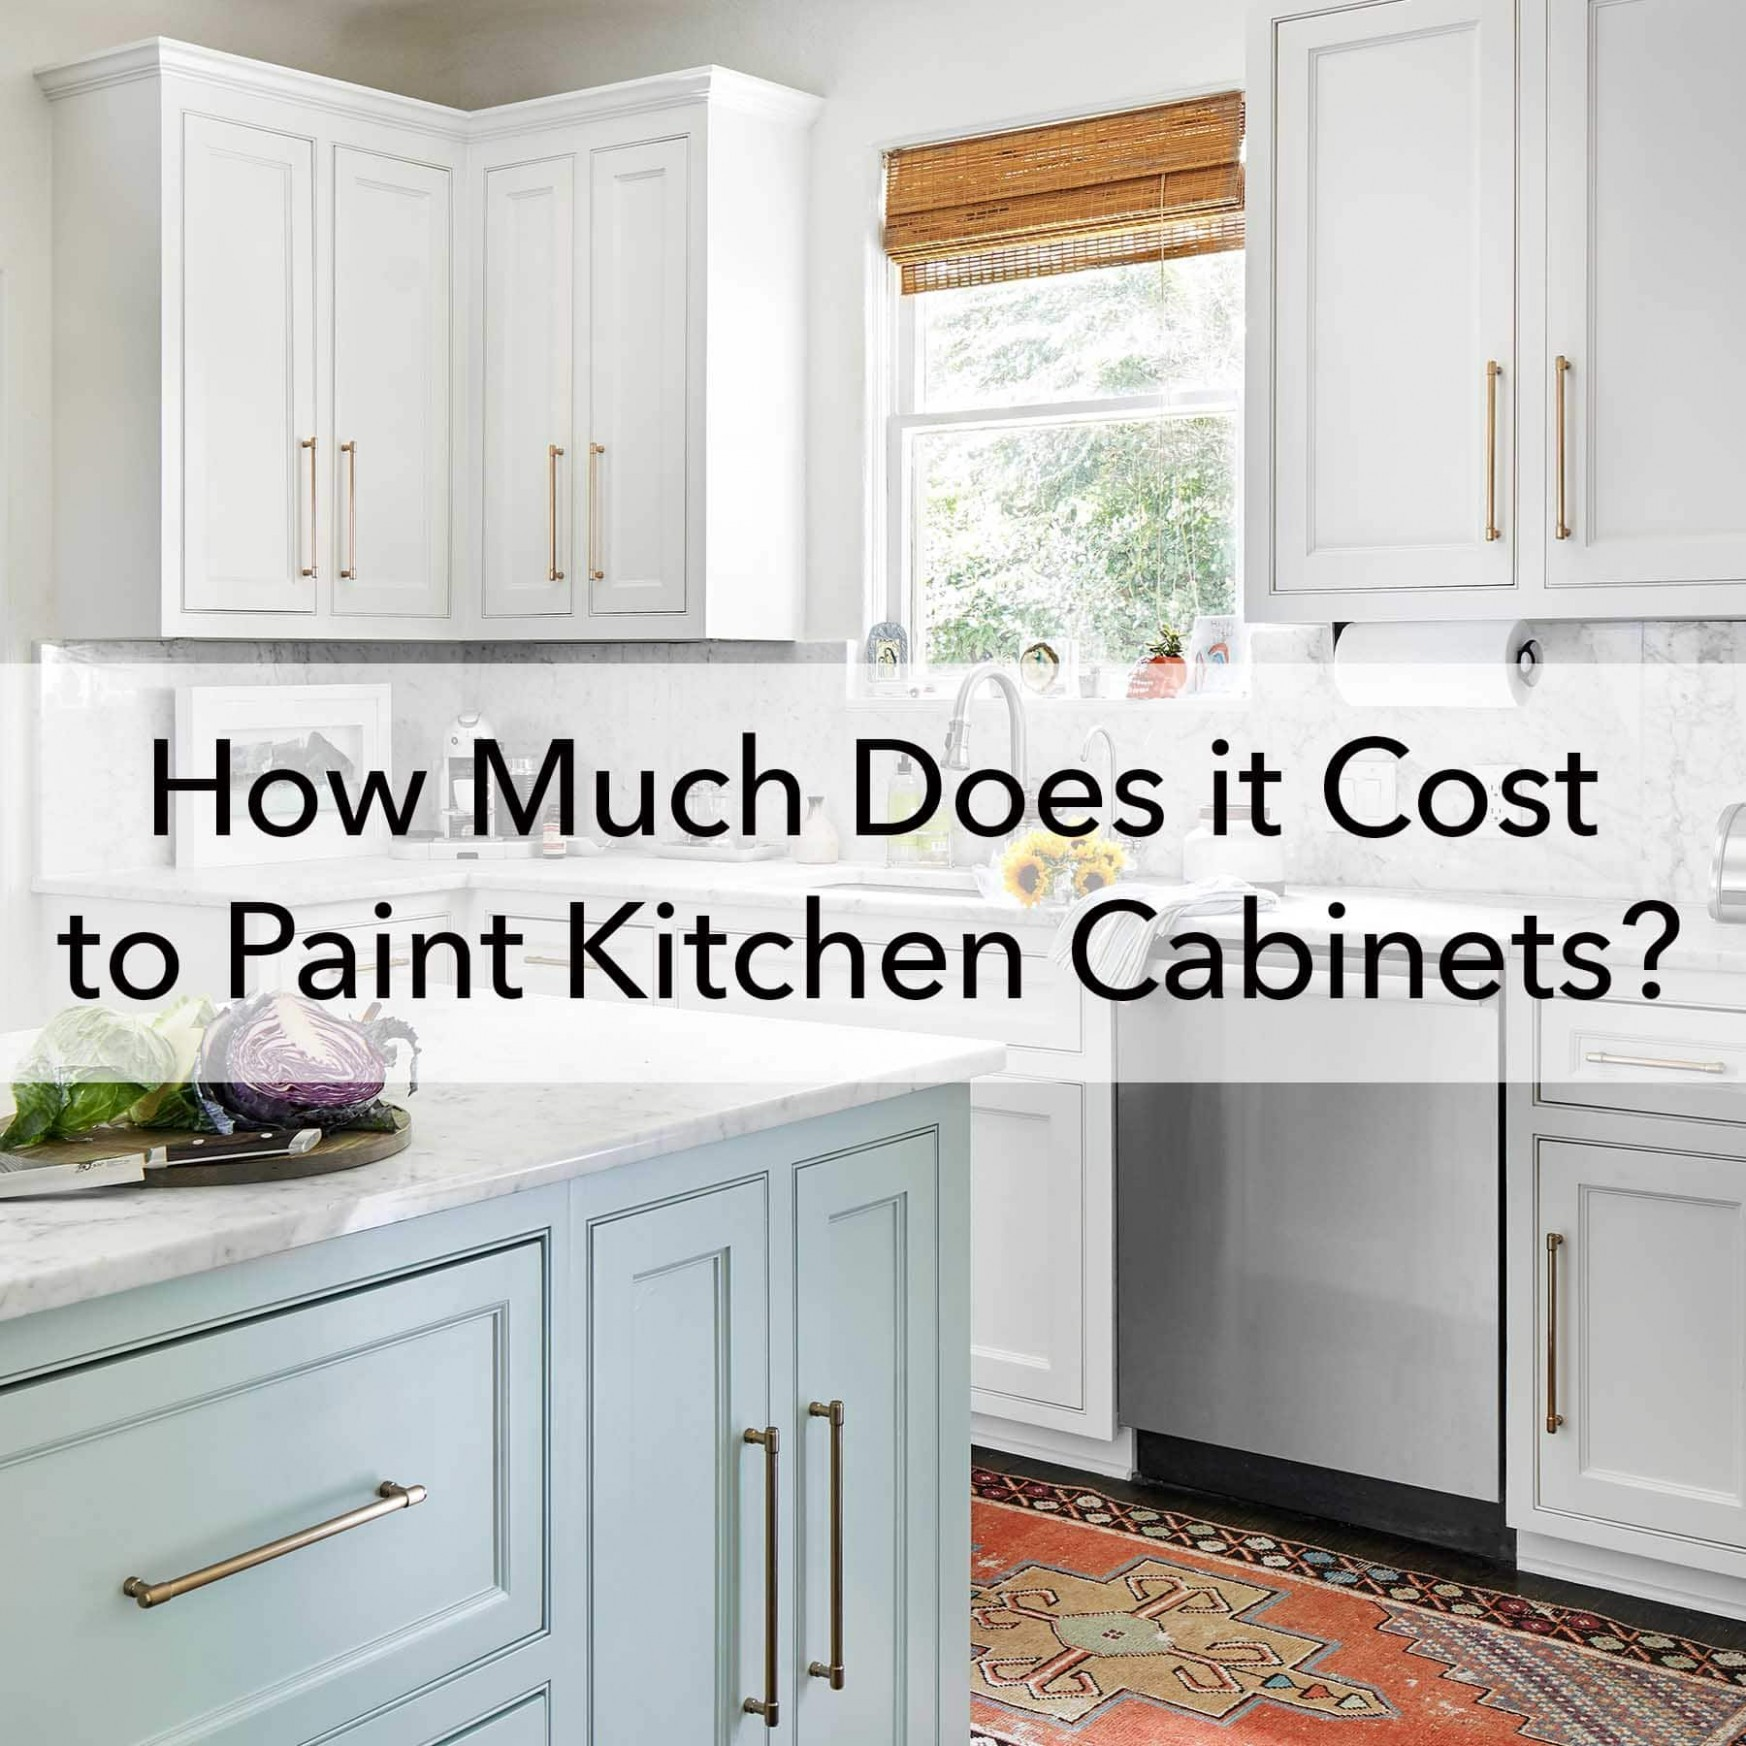 How Much does it Cost to Paint Kitchen Cabinets - Paper Moon Painting - How Much Does Refinishing Kitchen Cabinets Cost